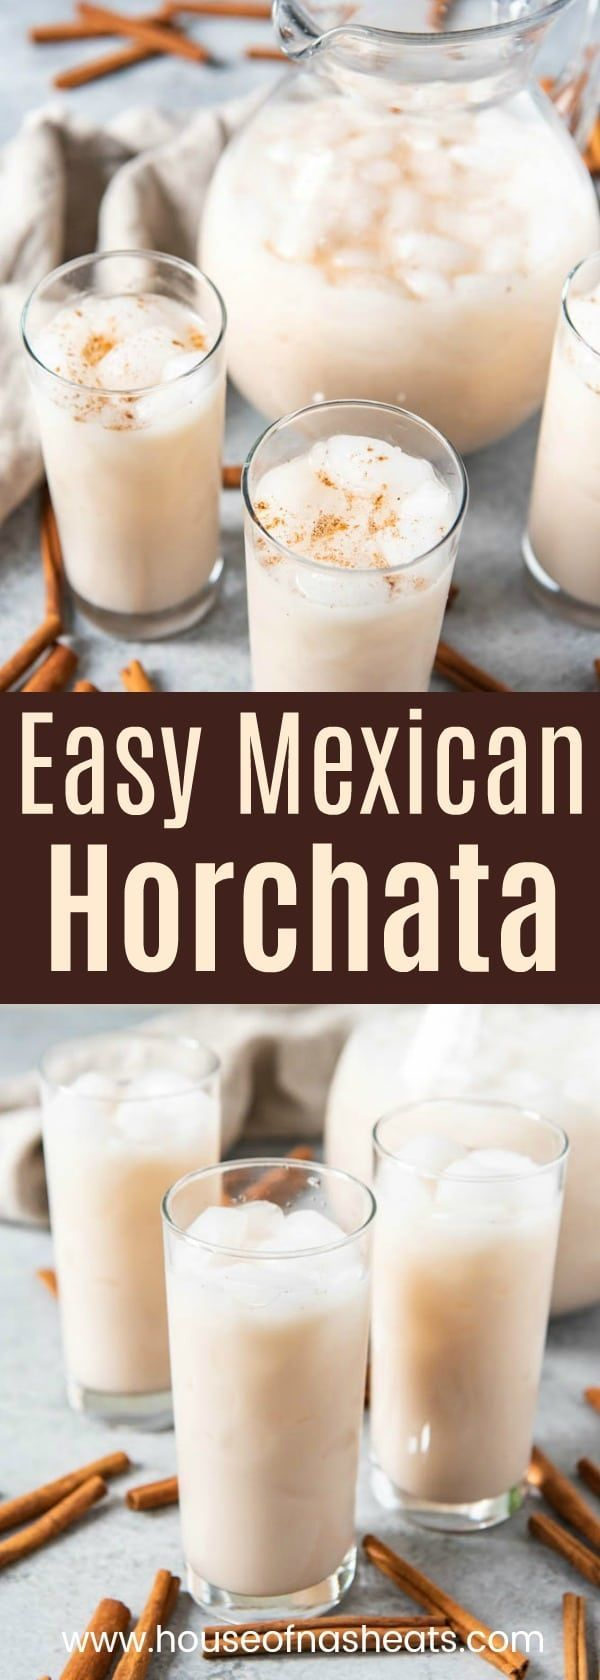 This Horchata Mexican drink recipe is aa slightly creamy, non-alcoholic agua fresca flavor made with cinnamon and rice and is perfectly refreshing.#horchata